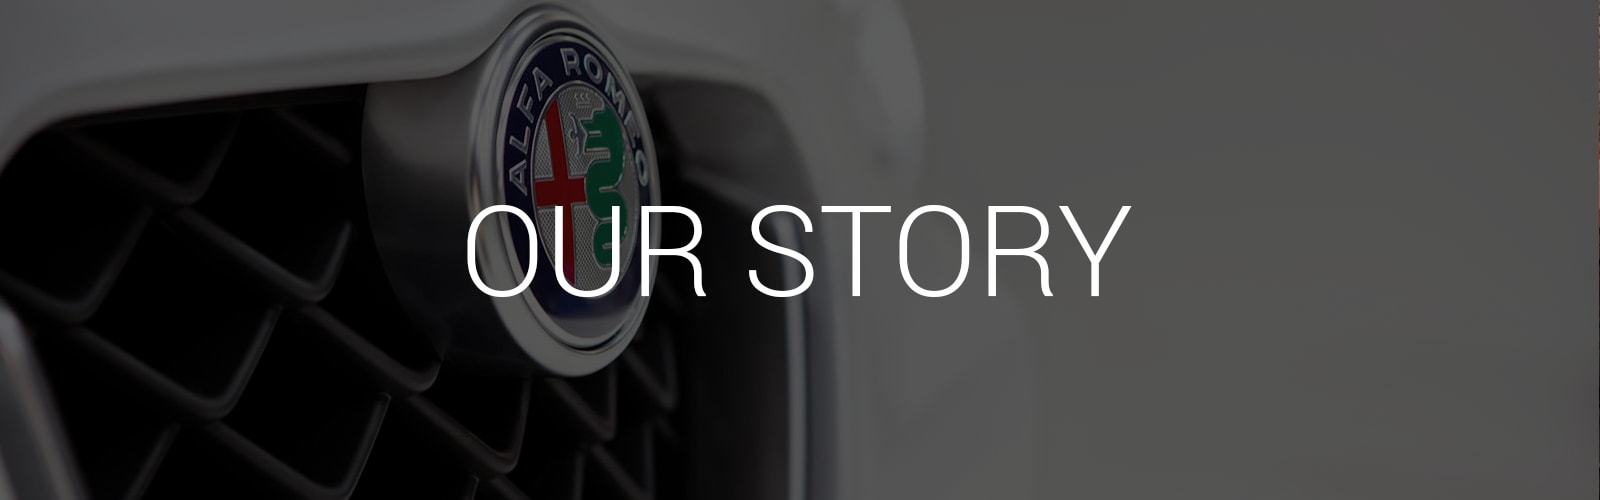 about ramsey alfa romeo | alfa romeo dealership bergen county nj